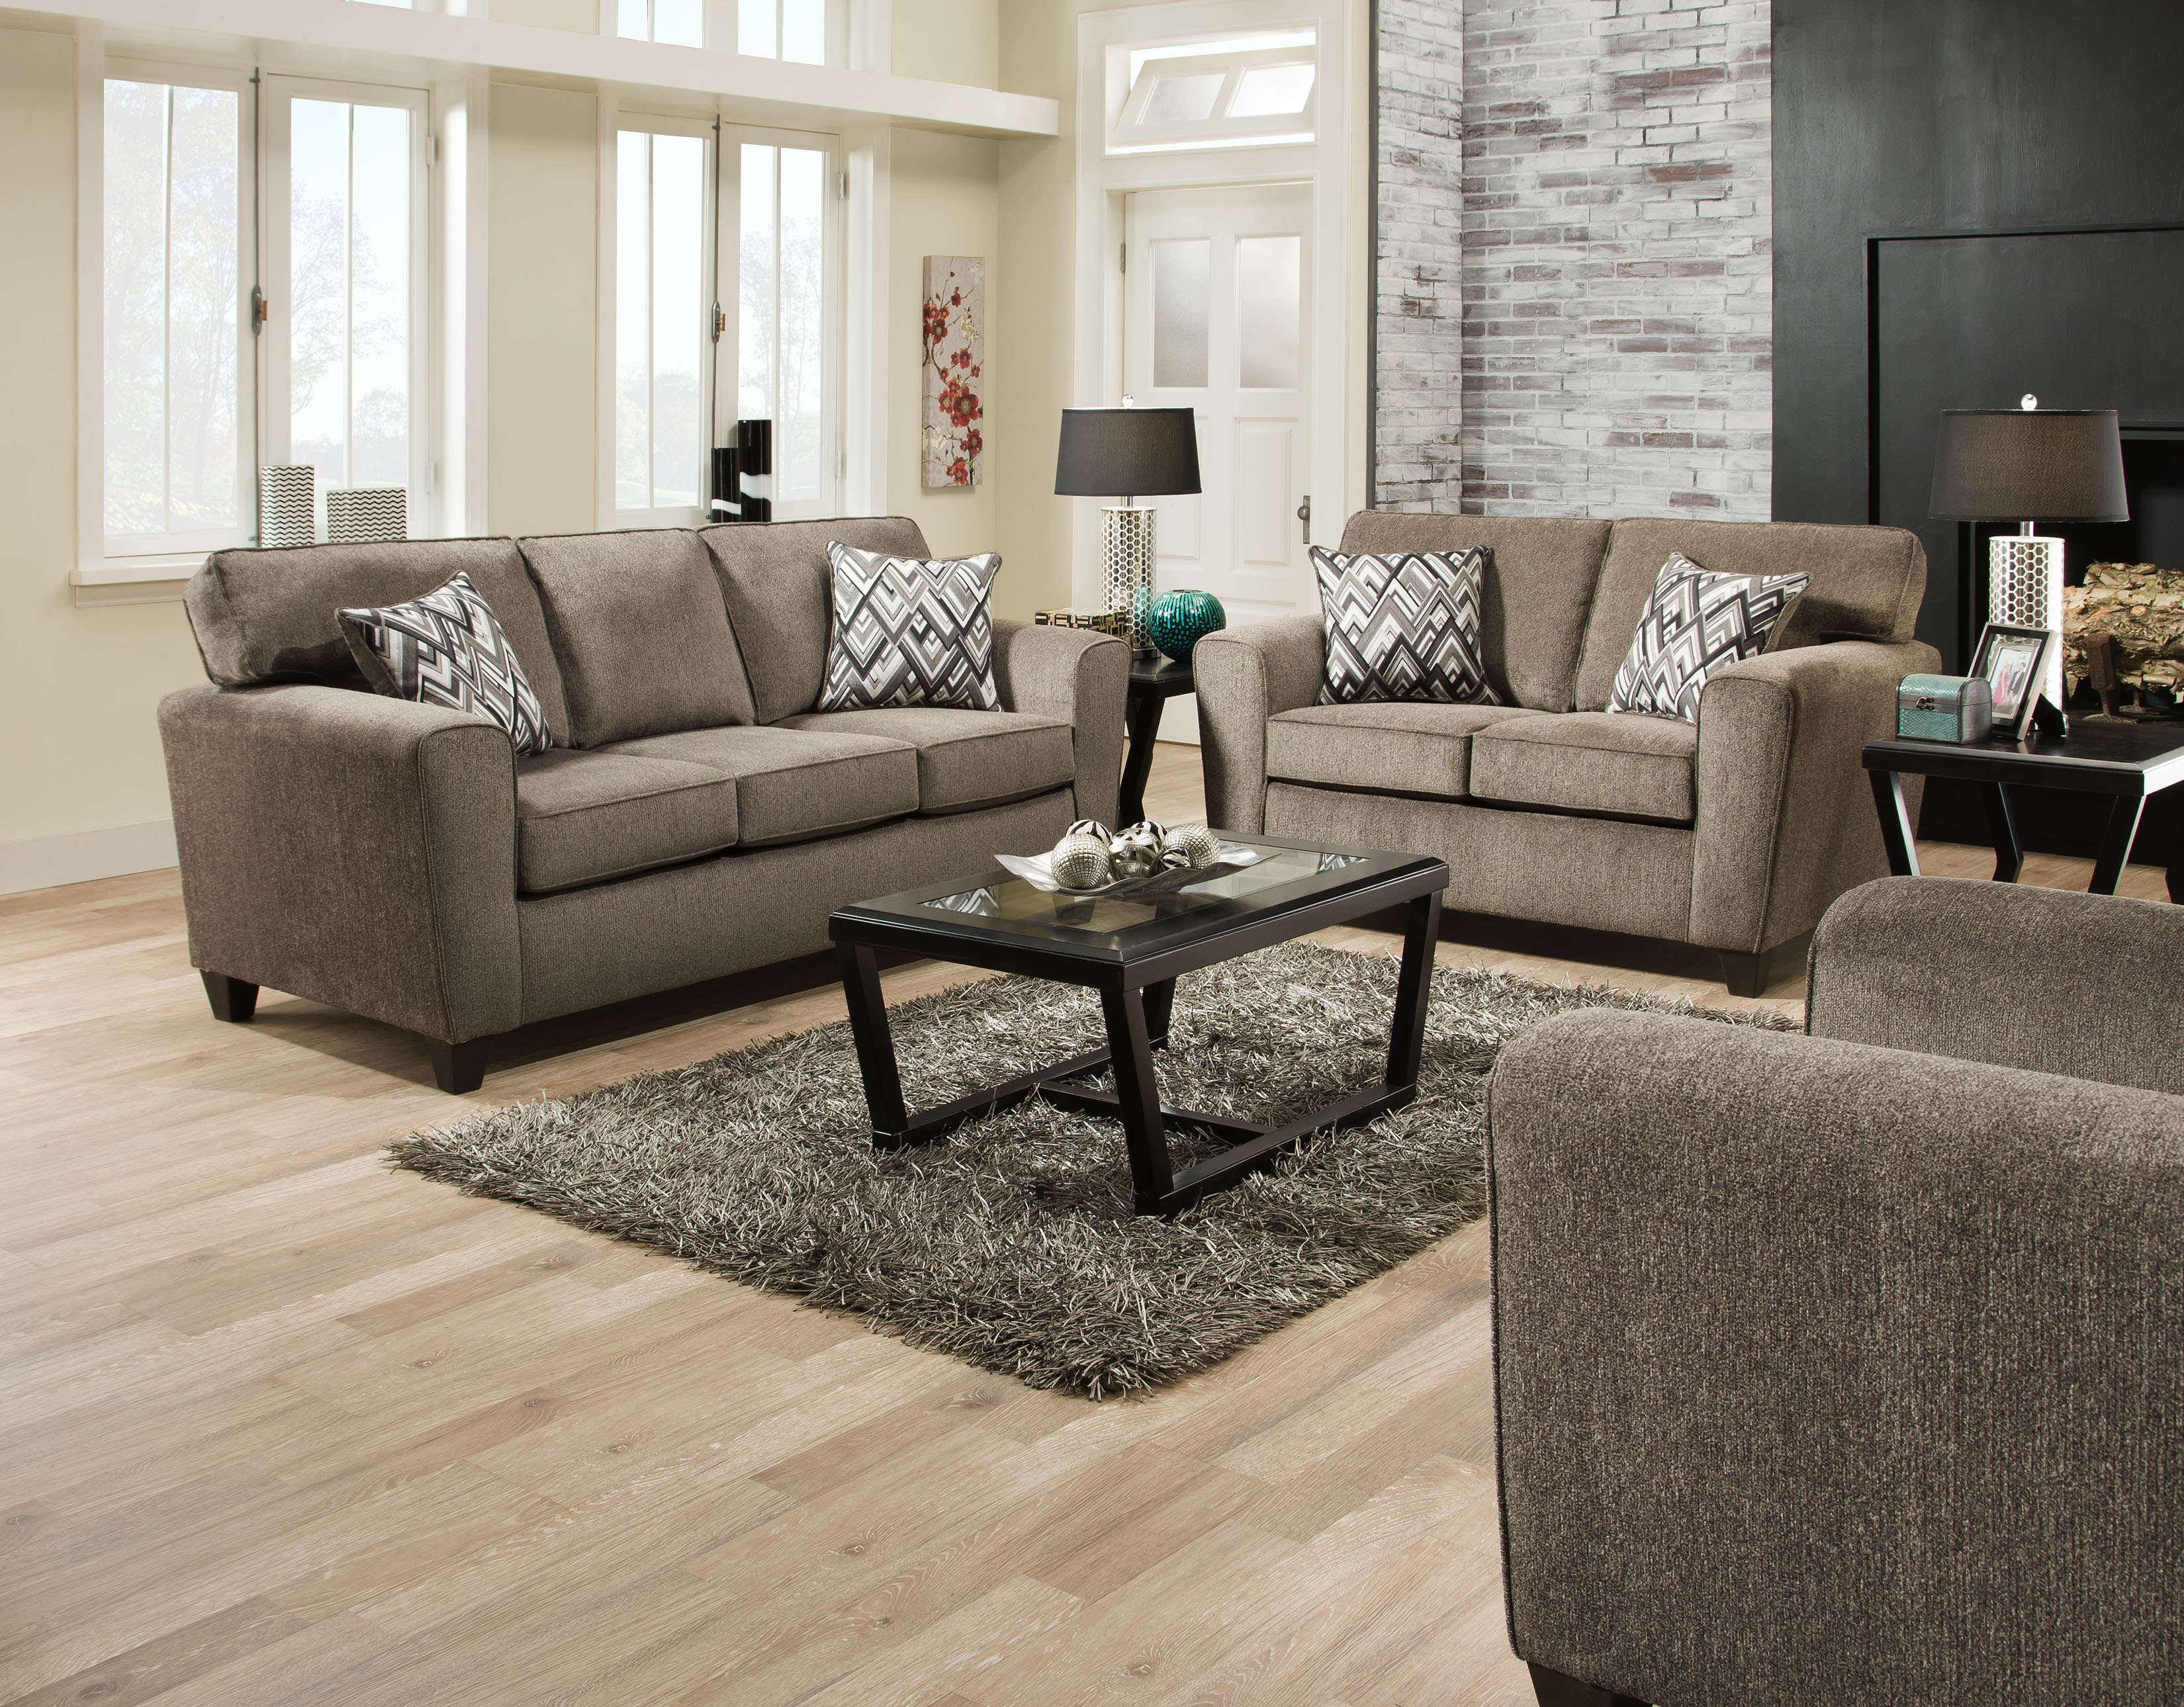 Living Room – Crazy Joe's Best Deal Furniture Inside Janesville Wi Sectional Sofas (View 8 of 10)